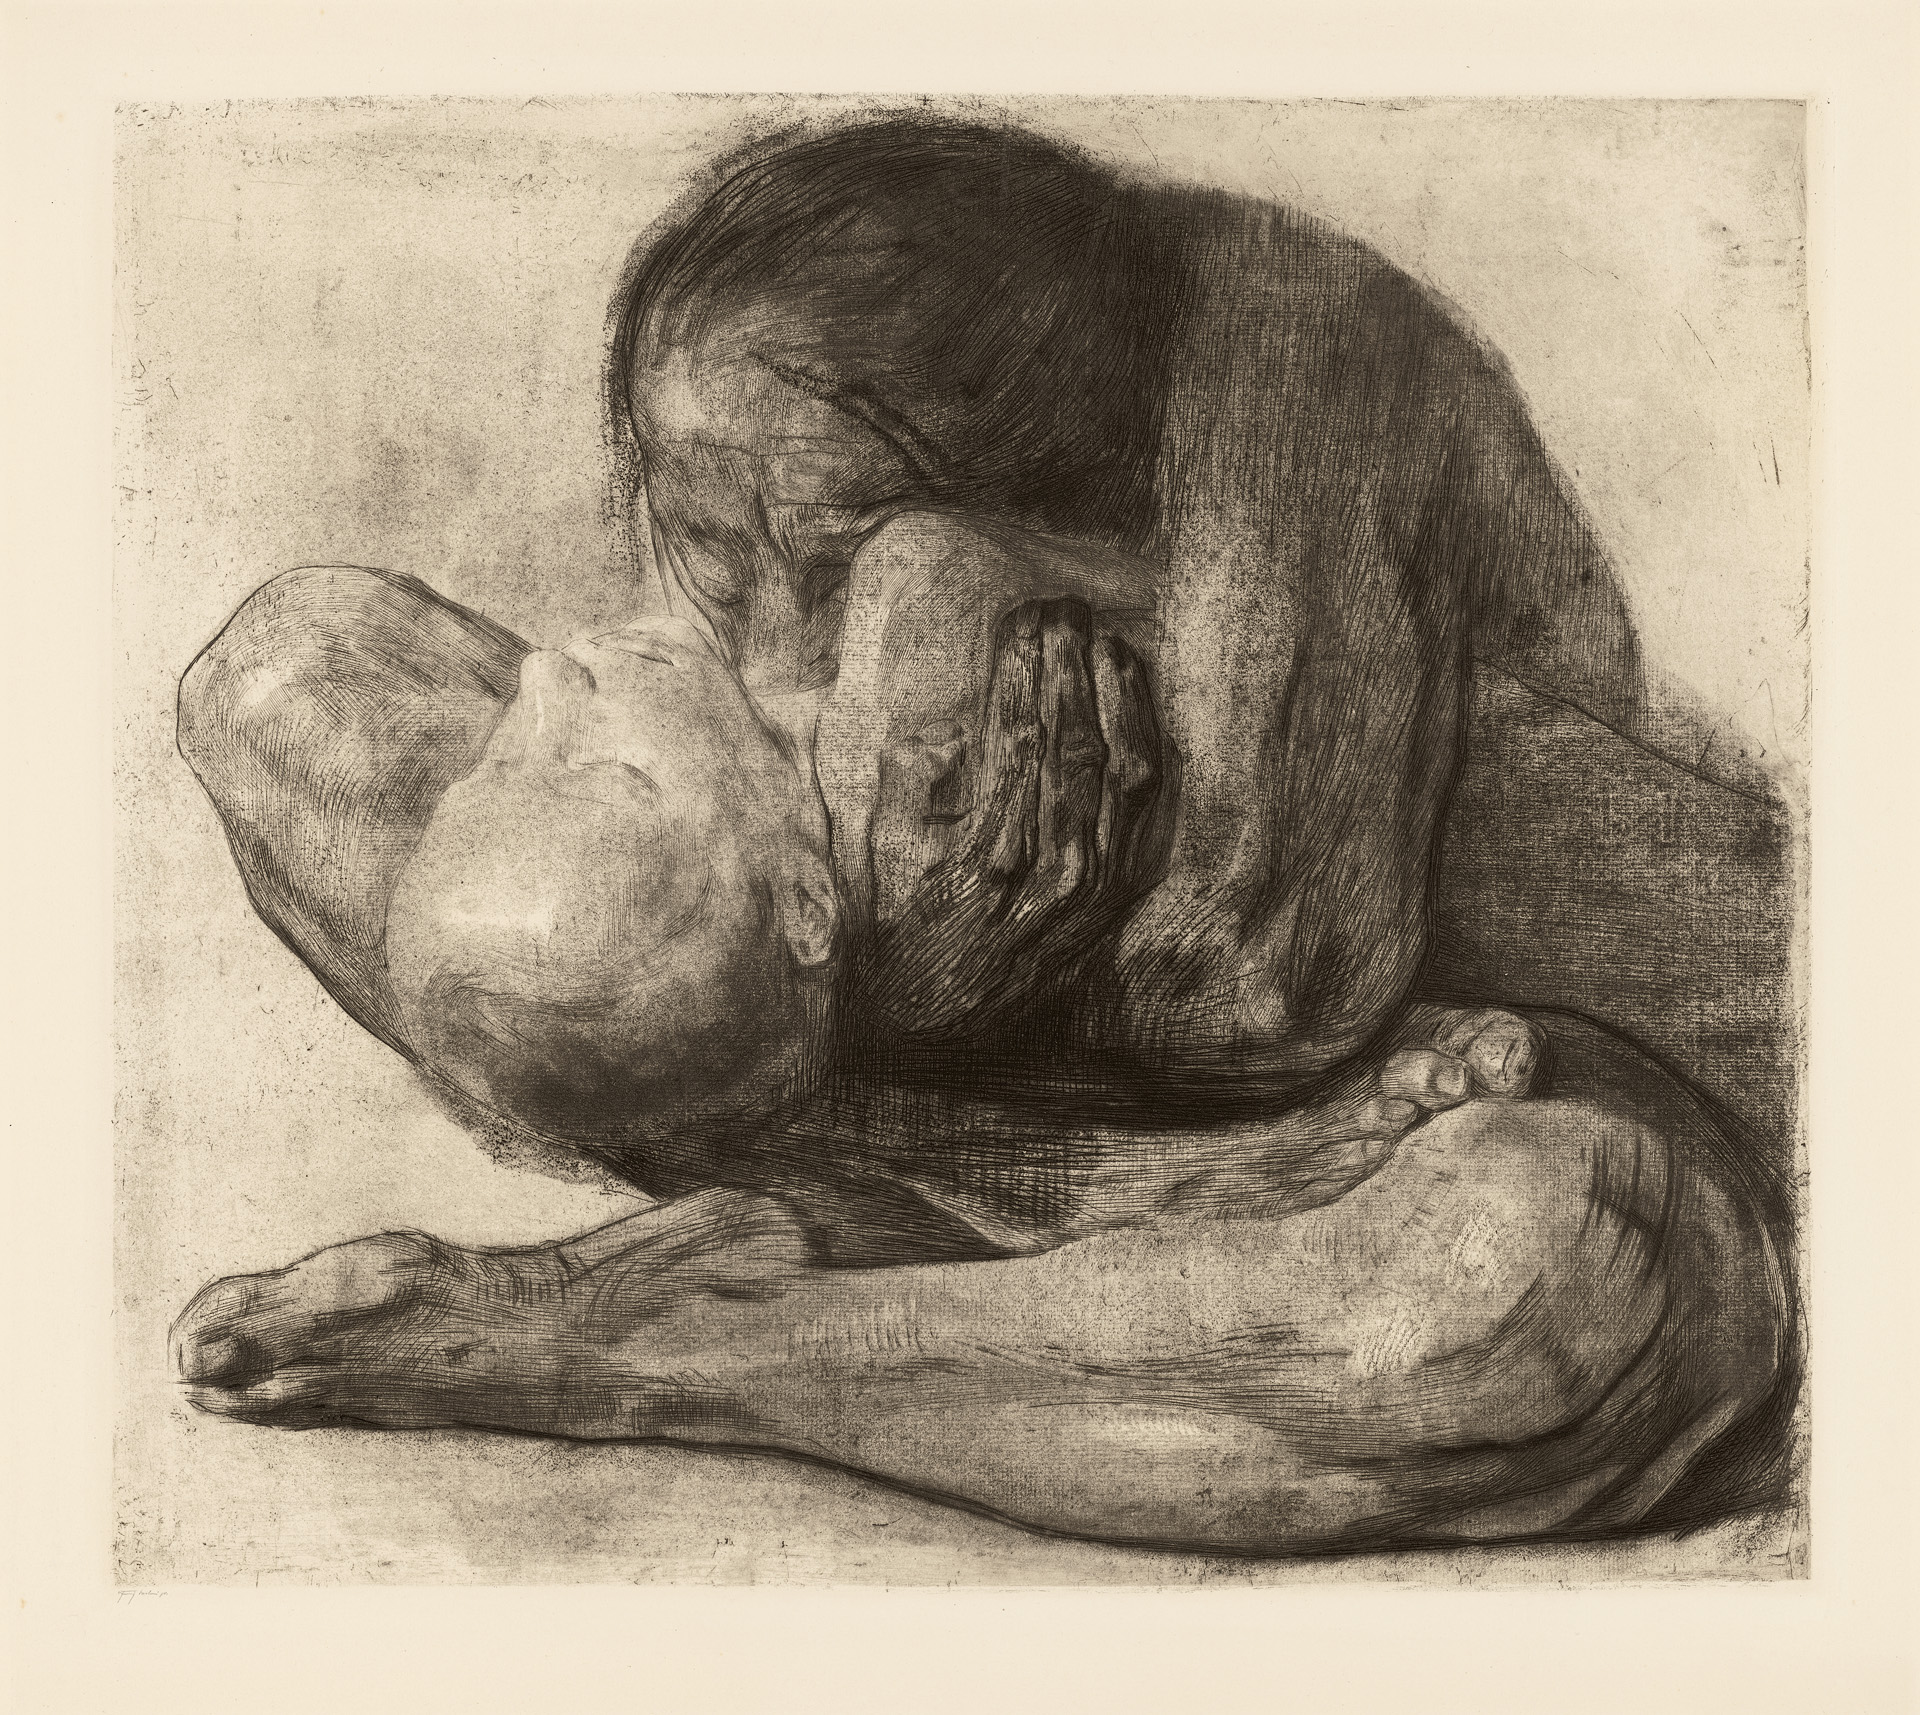 Käthe Kollwitz, Woman with dead Child, 1903, line etching, drypoint, sandpaper and soft ground with imprint of ribbed laid paper and Ziegler's transfer paper, Kn 81 VIII a, Cologne Kollwitz Collection © Käthe Kollwitz Museum Köln